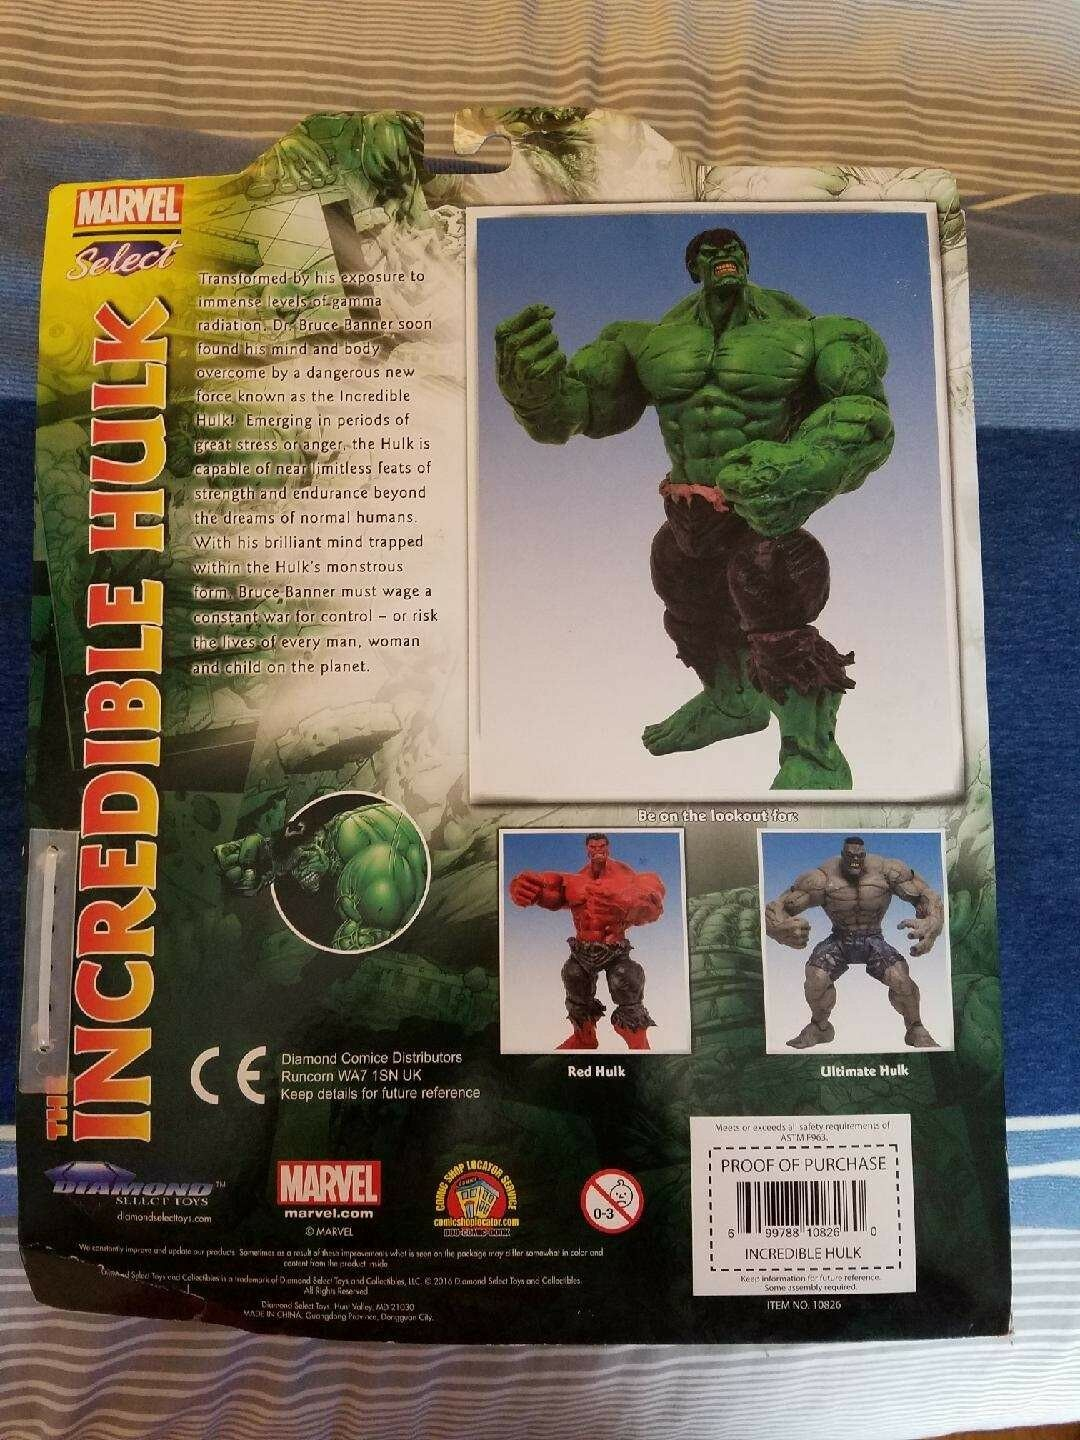 THE INCREDIBLE HULK (GREEN) ACTION FIGURE by by by Diamond Select Toys 493c2d